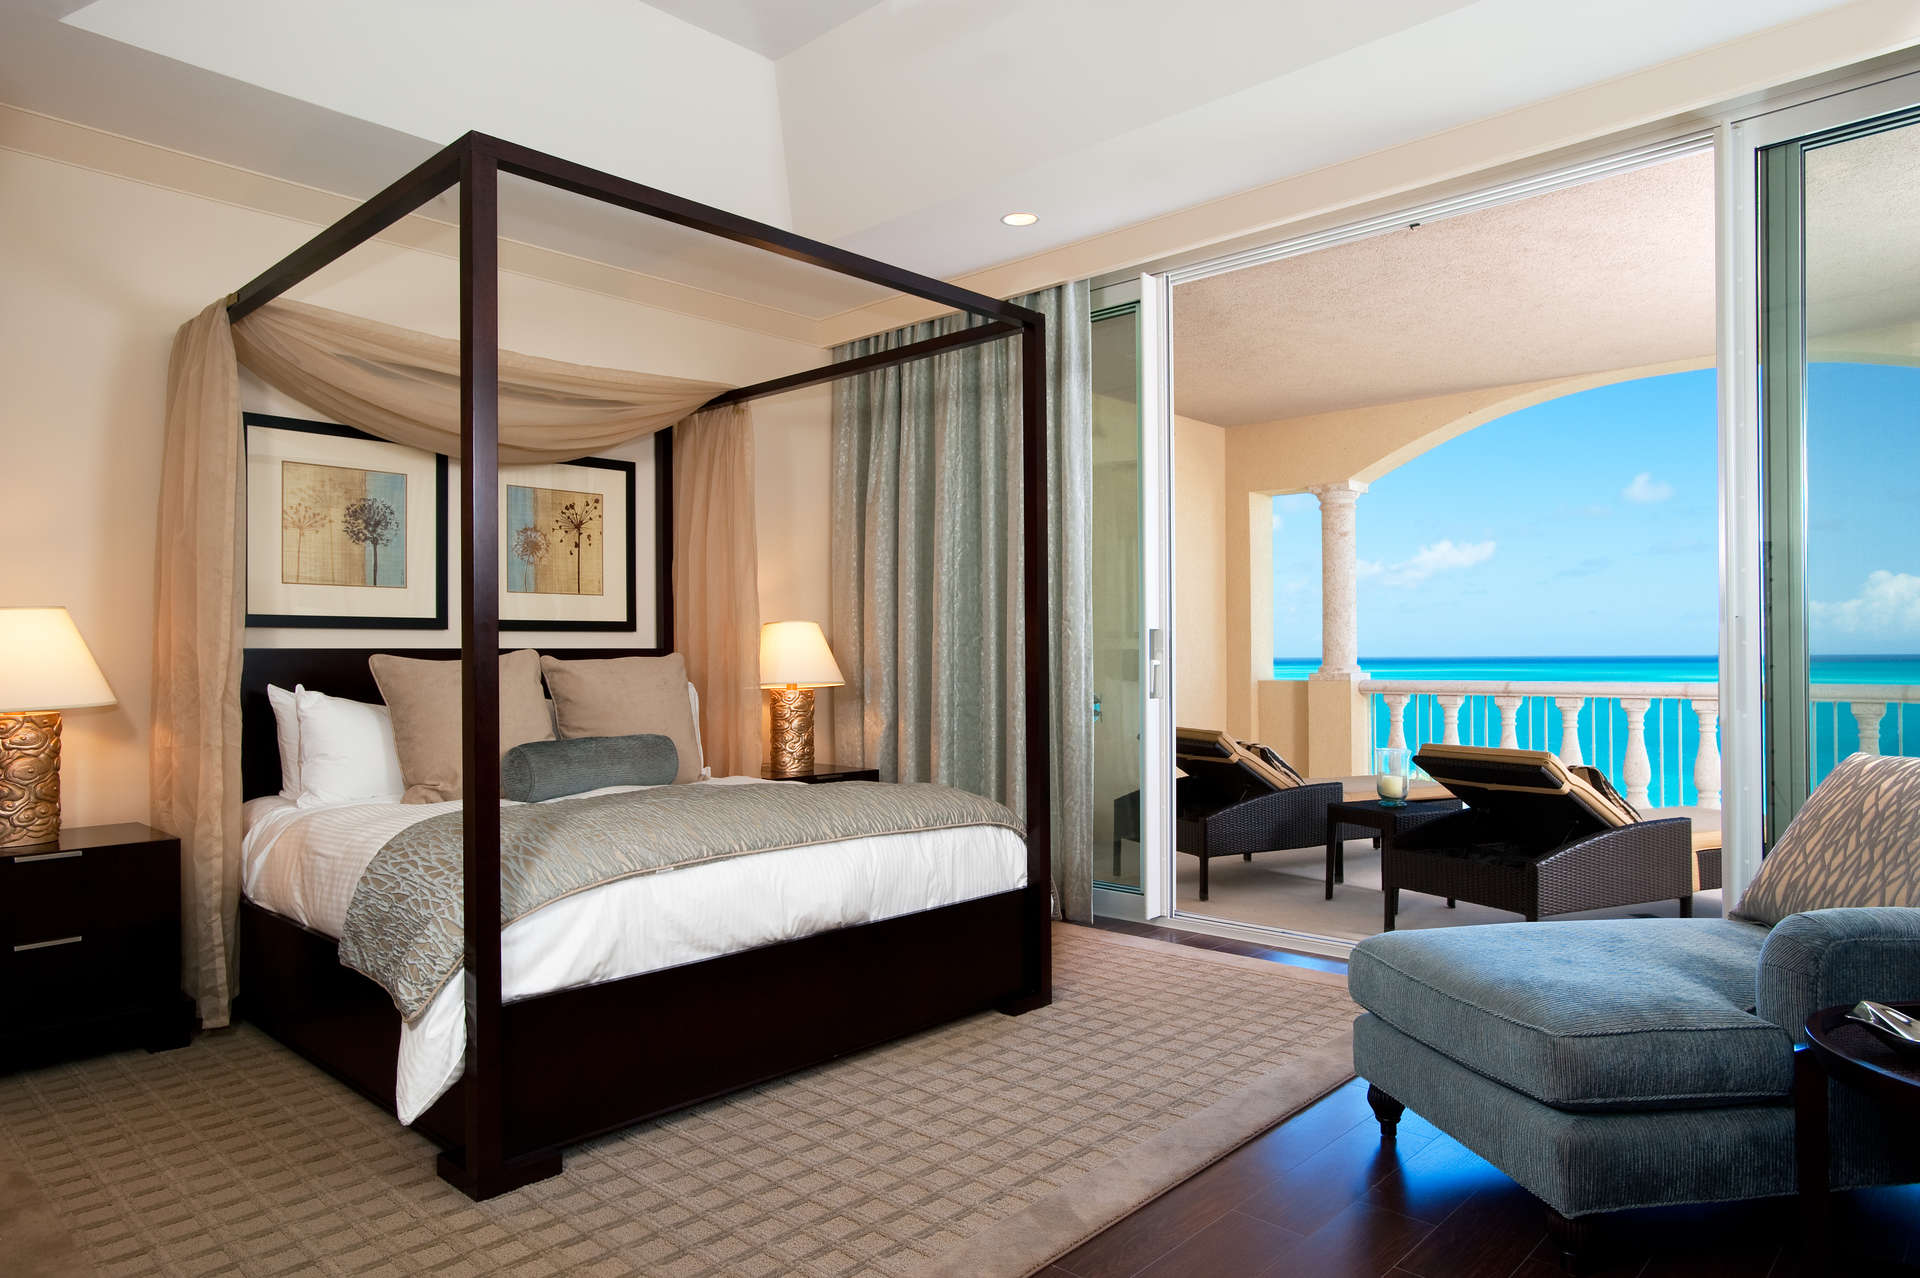 Luxury villa rentals caribbean - Turks and caicos - Providenciales - Grace bay club - Estate Premier Residence | 4 BDMS - Image 1/11